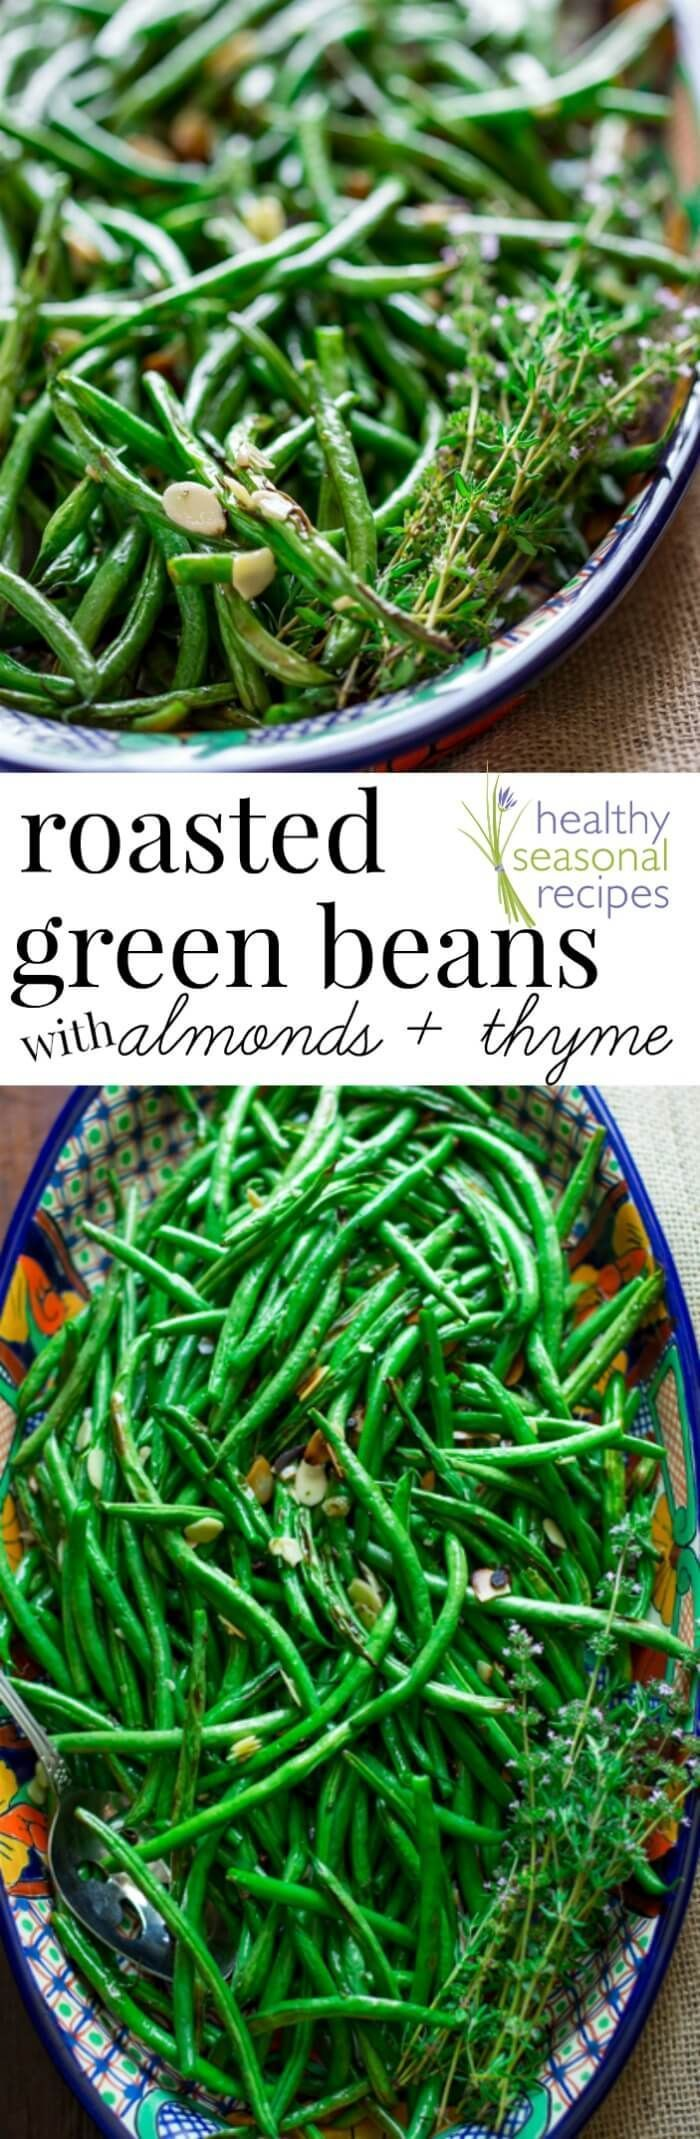 Classic Roasted Green Beans with Almonds and Thyme. Simple and delicious for an easy summer side dish or for Thanksgiving. @healthyseasonal